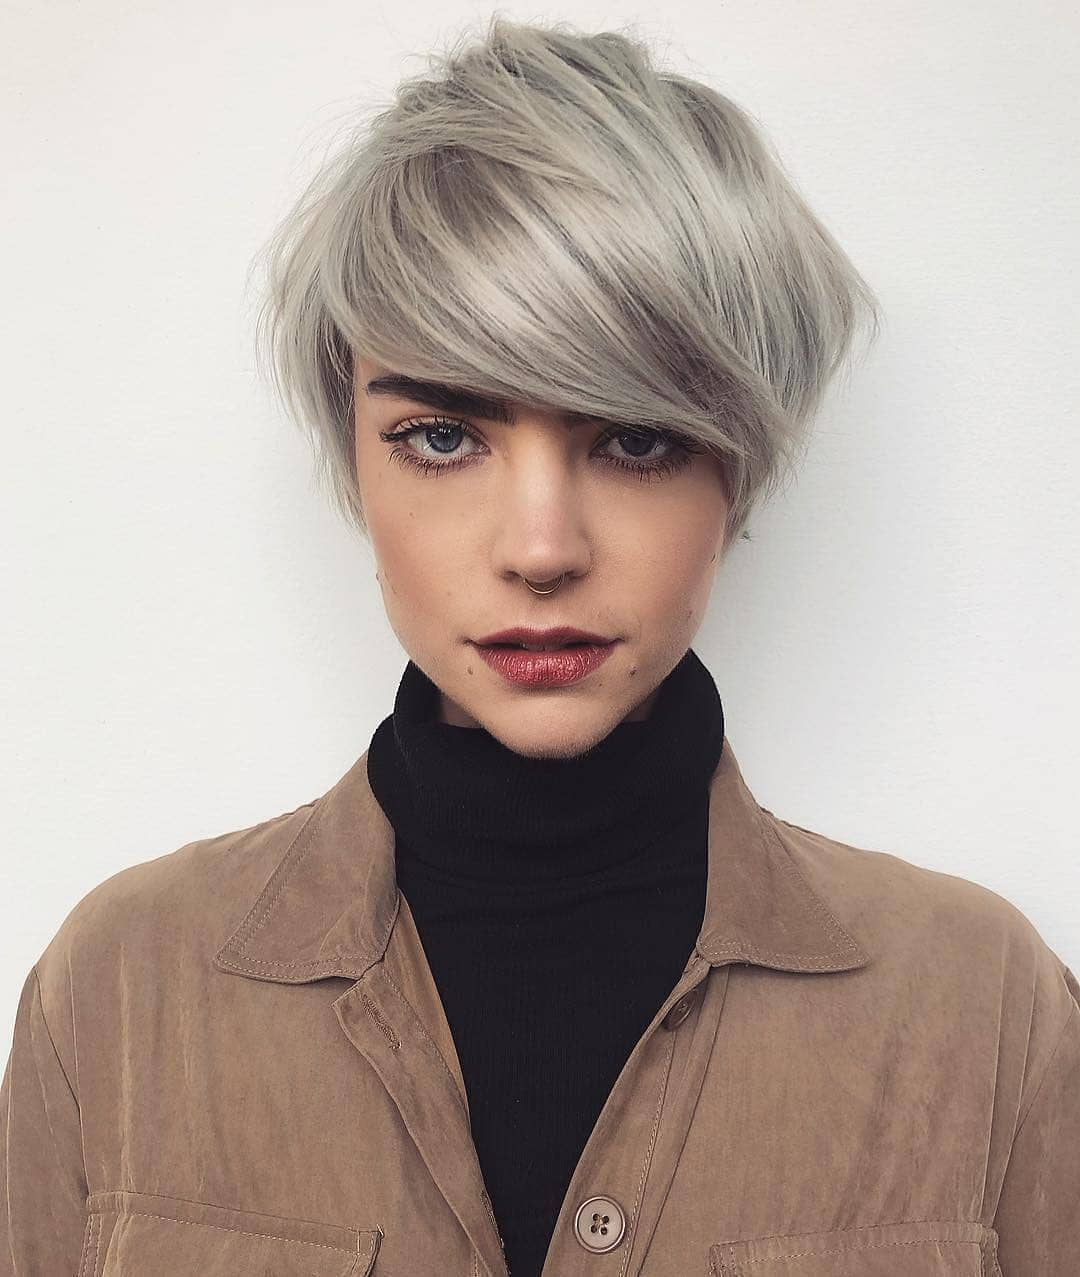 10 Trendy Short Hairstyles For Straight Hair Pixie Haircut For Female 2021